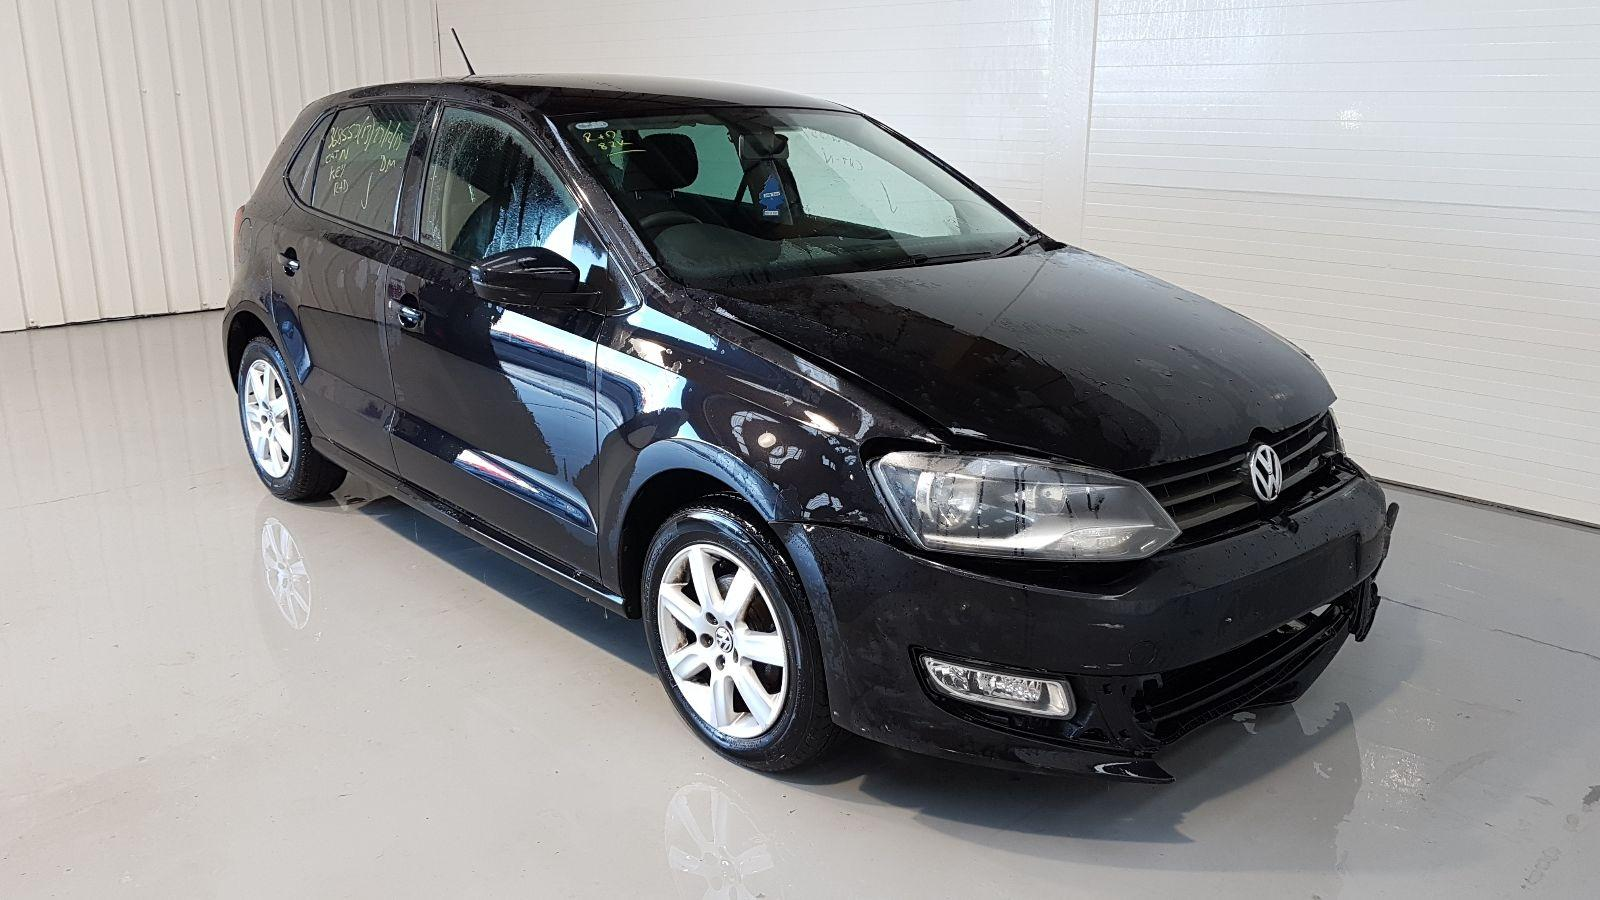 Image for a 2011 Volkswagen Polo 1.4 Petrol  Engine